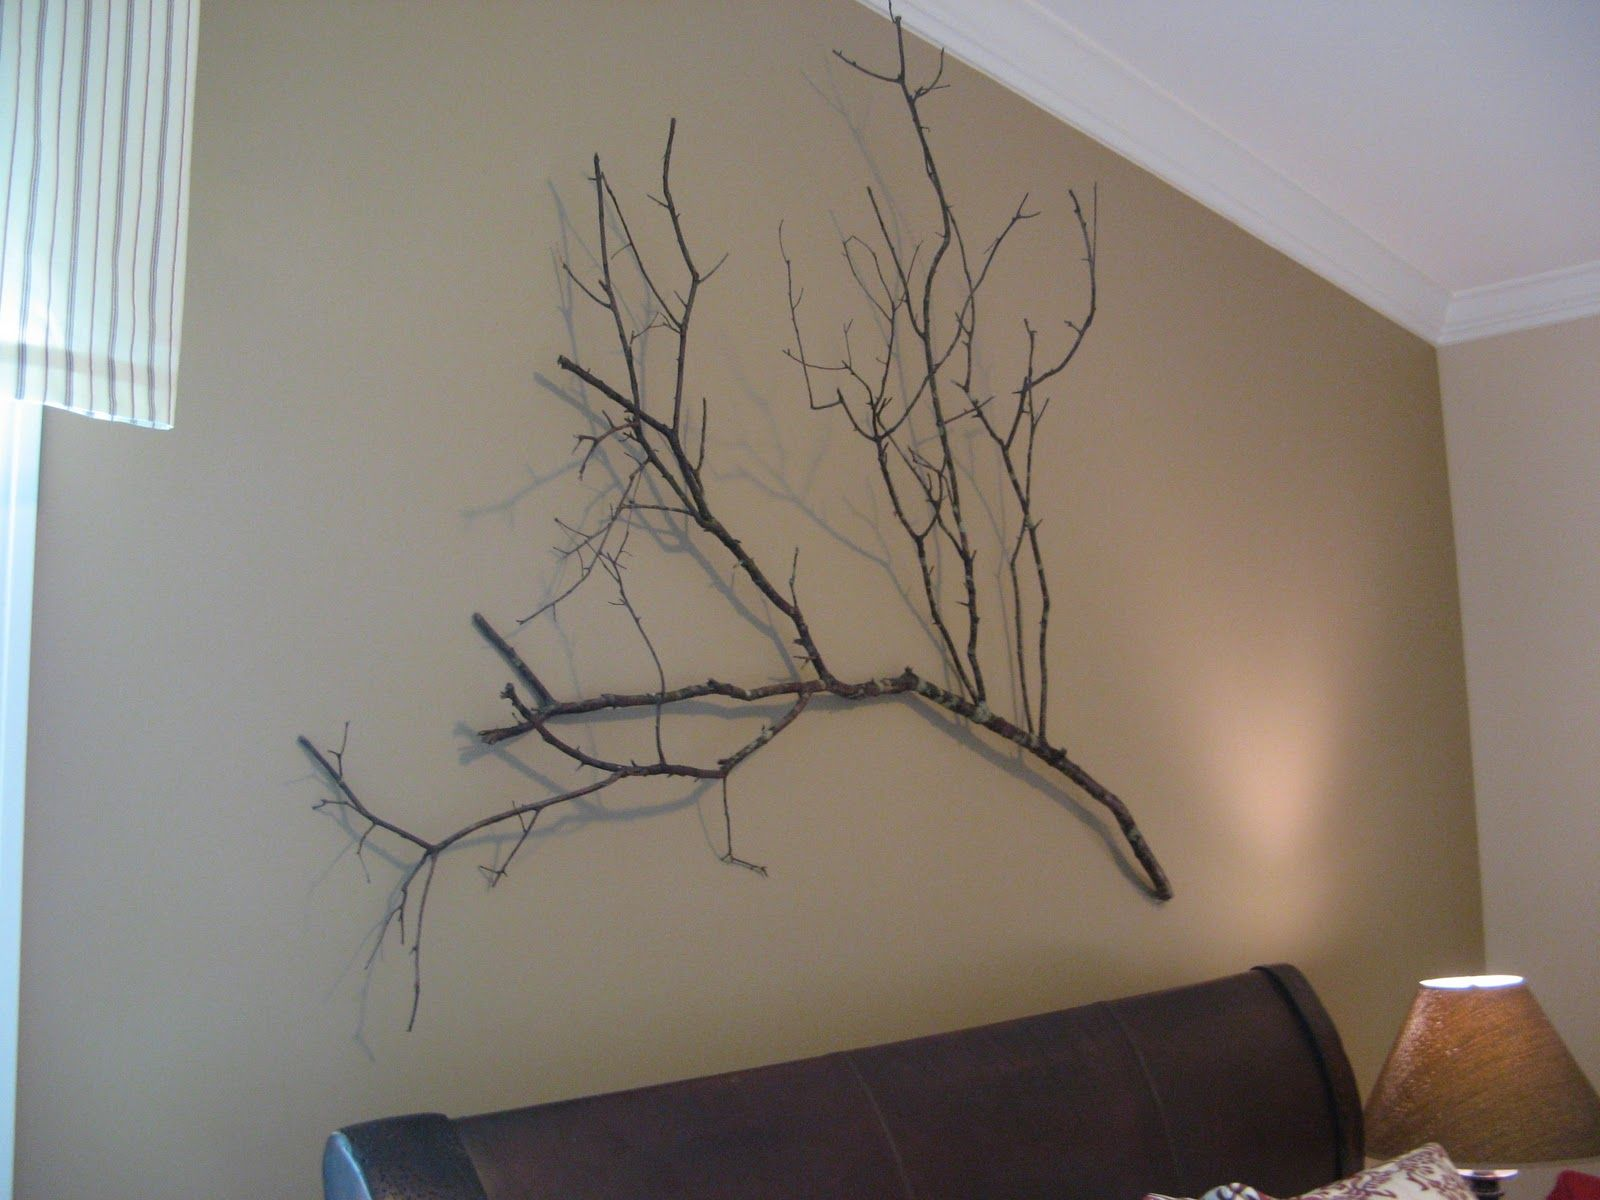 Tree Branch Wall Art, Crate And Barrel Knock Off, Rustic Wall Art, Natural Wall  Art, Unique Wall Art